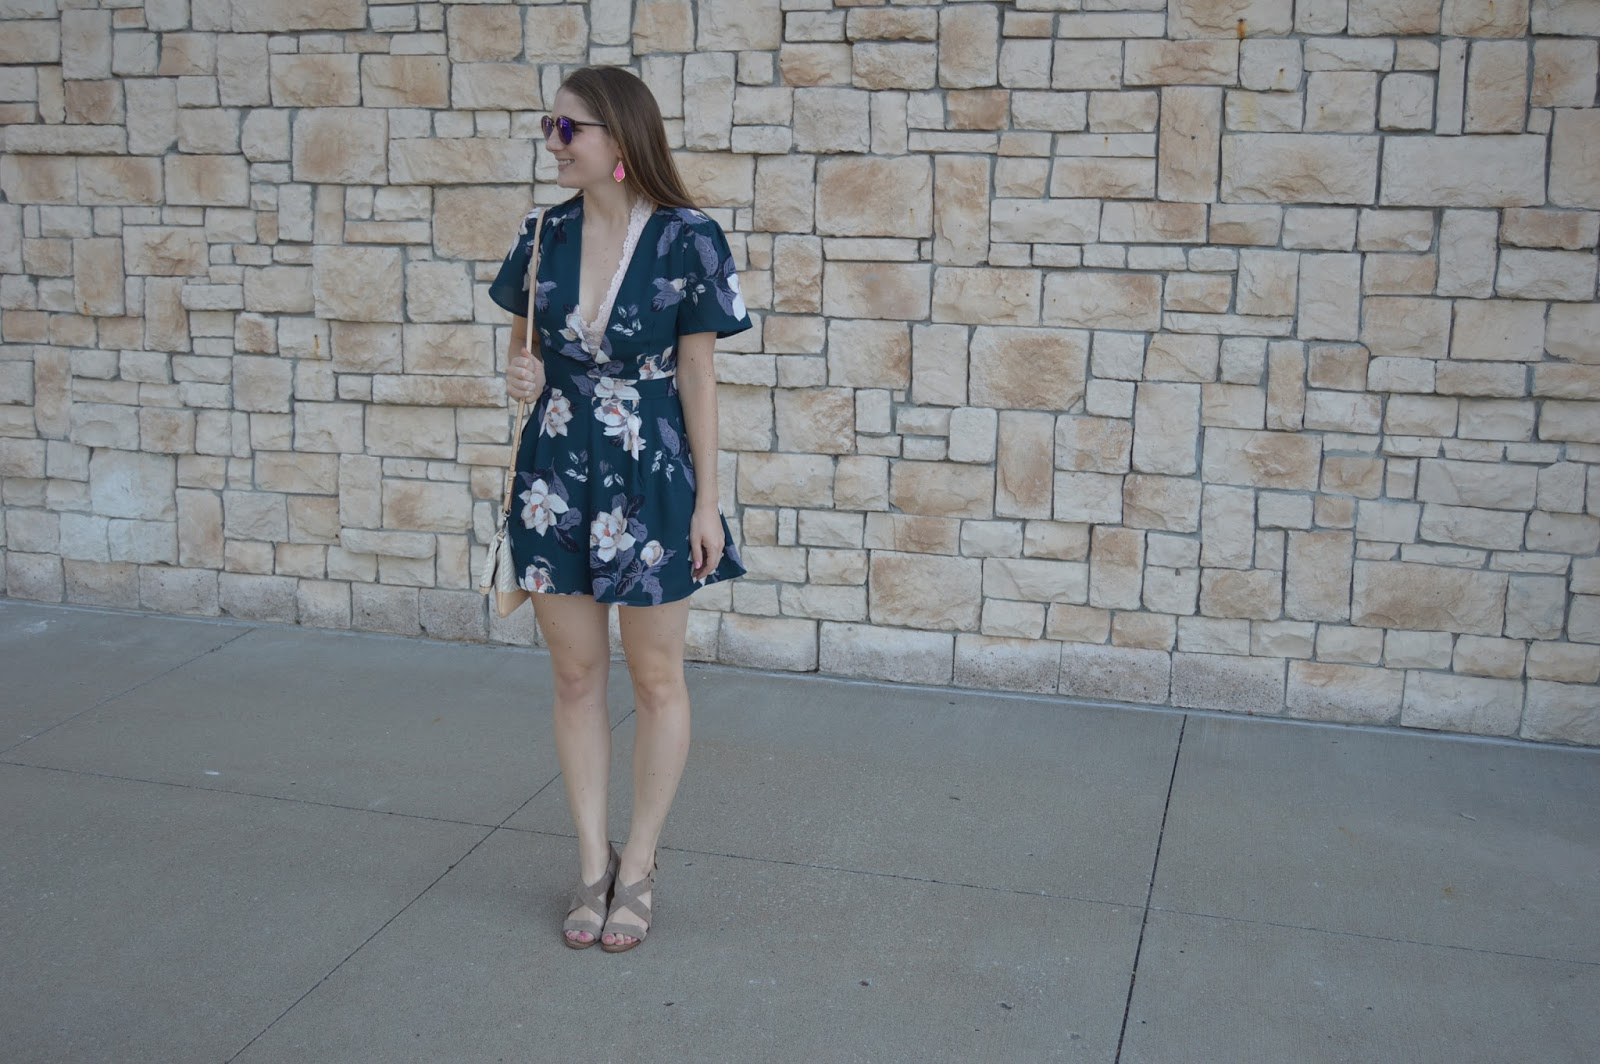 teal floral print romper | a memory of us | astr floral print romper | nordstrom anniversary sale haul | how to style a romper for summer | date night outfit ideas | a memory of us | romper with a bralette underneath | how do you wear a bralette |